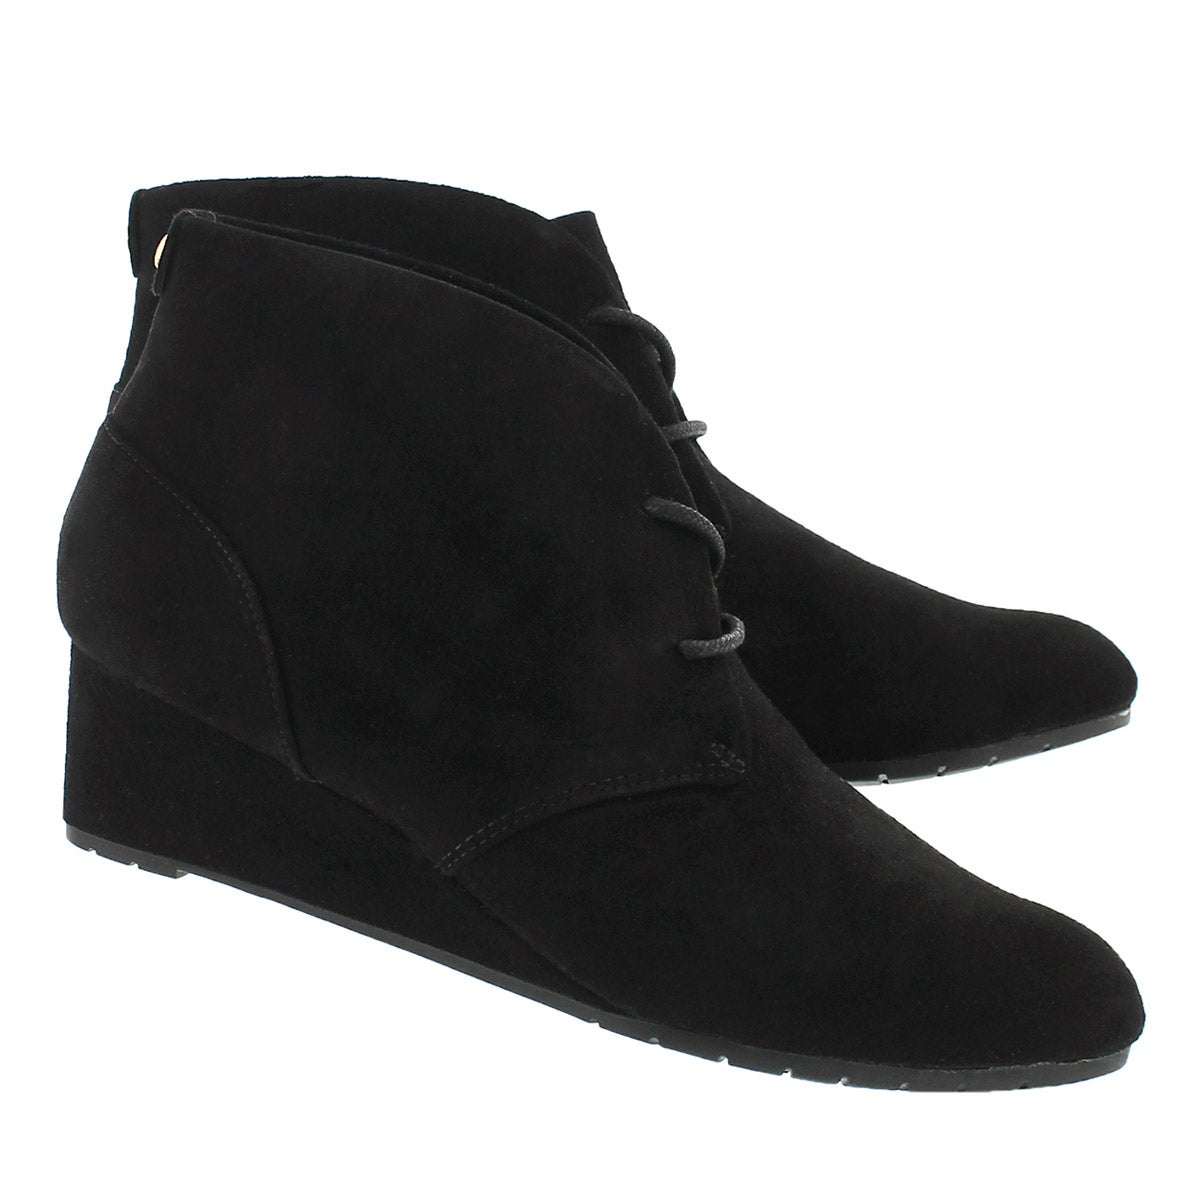 Lds Vendra Peak black lace up wedge boot